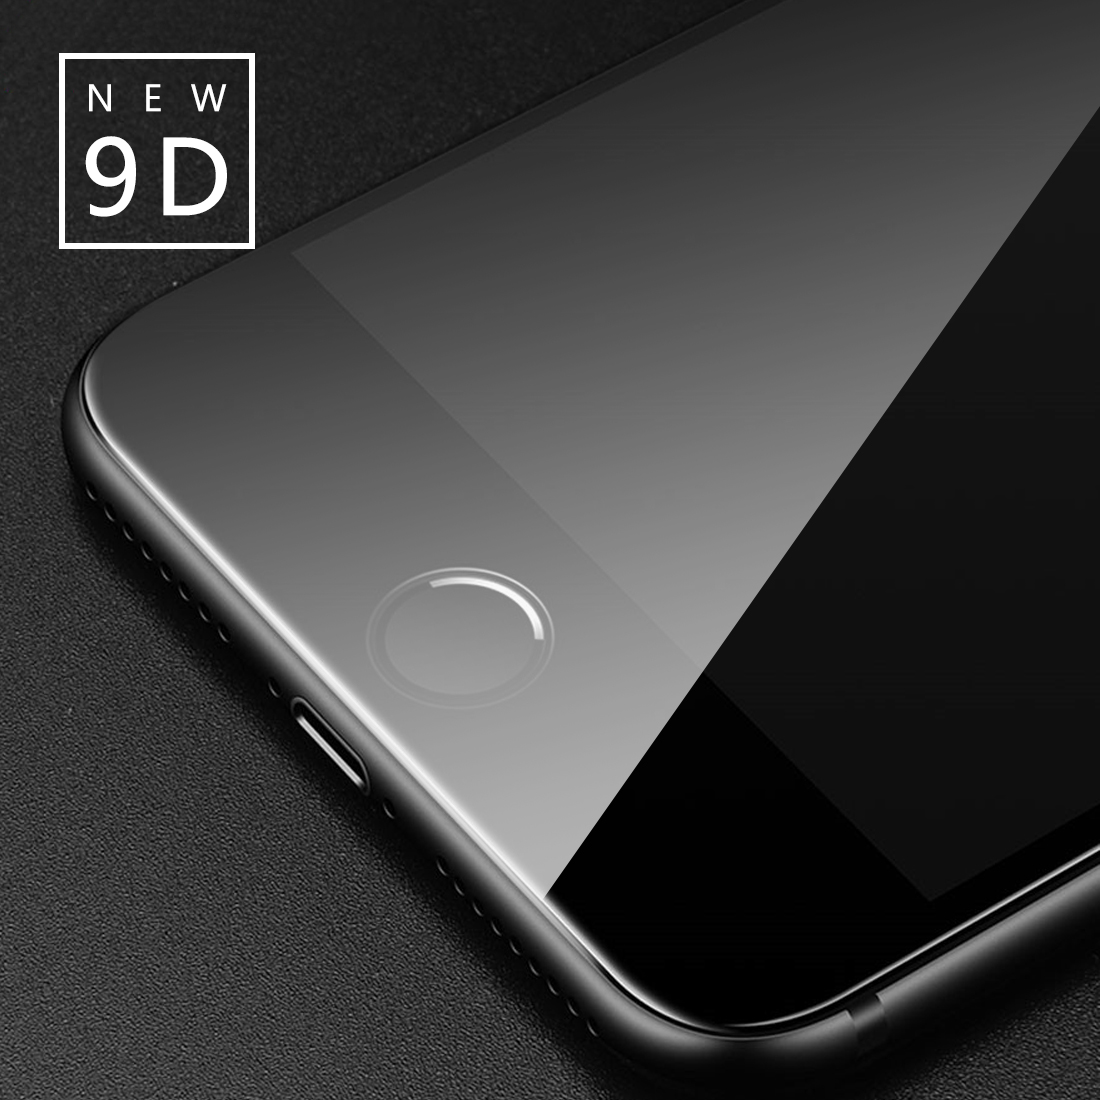 9D Tempered glass for iPhone 6 Plus 6S Plus full coverd screen tempered film for iPhone 7 8 Plus mobile phone accessories in Phone Screen Protectors from Cellphones Telecommunications